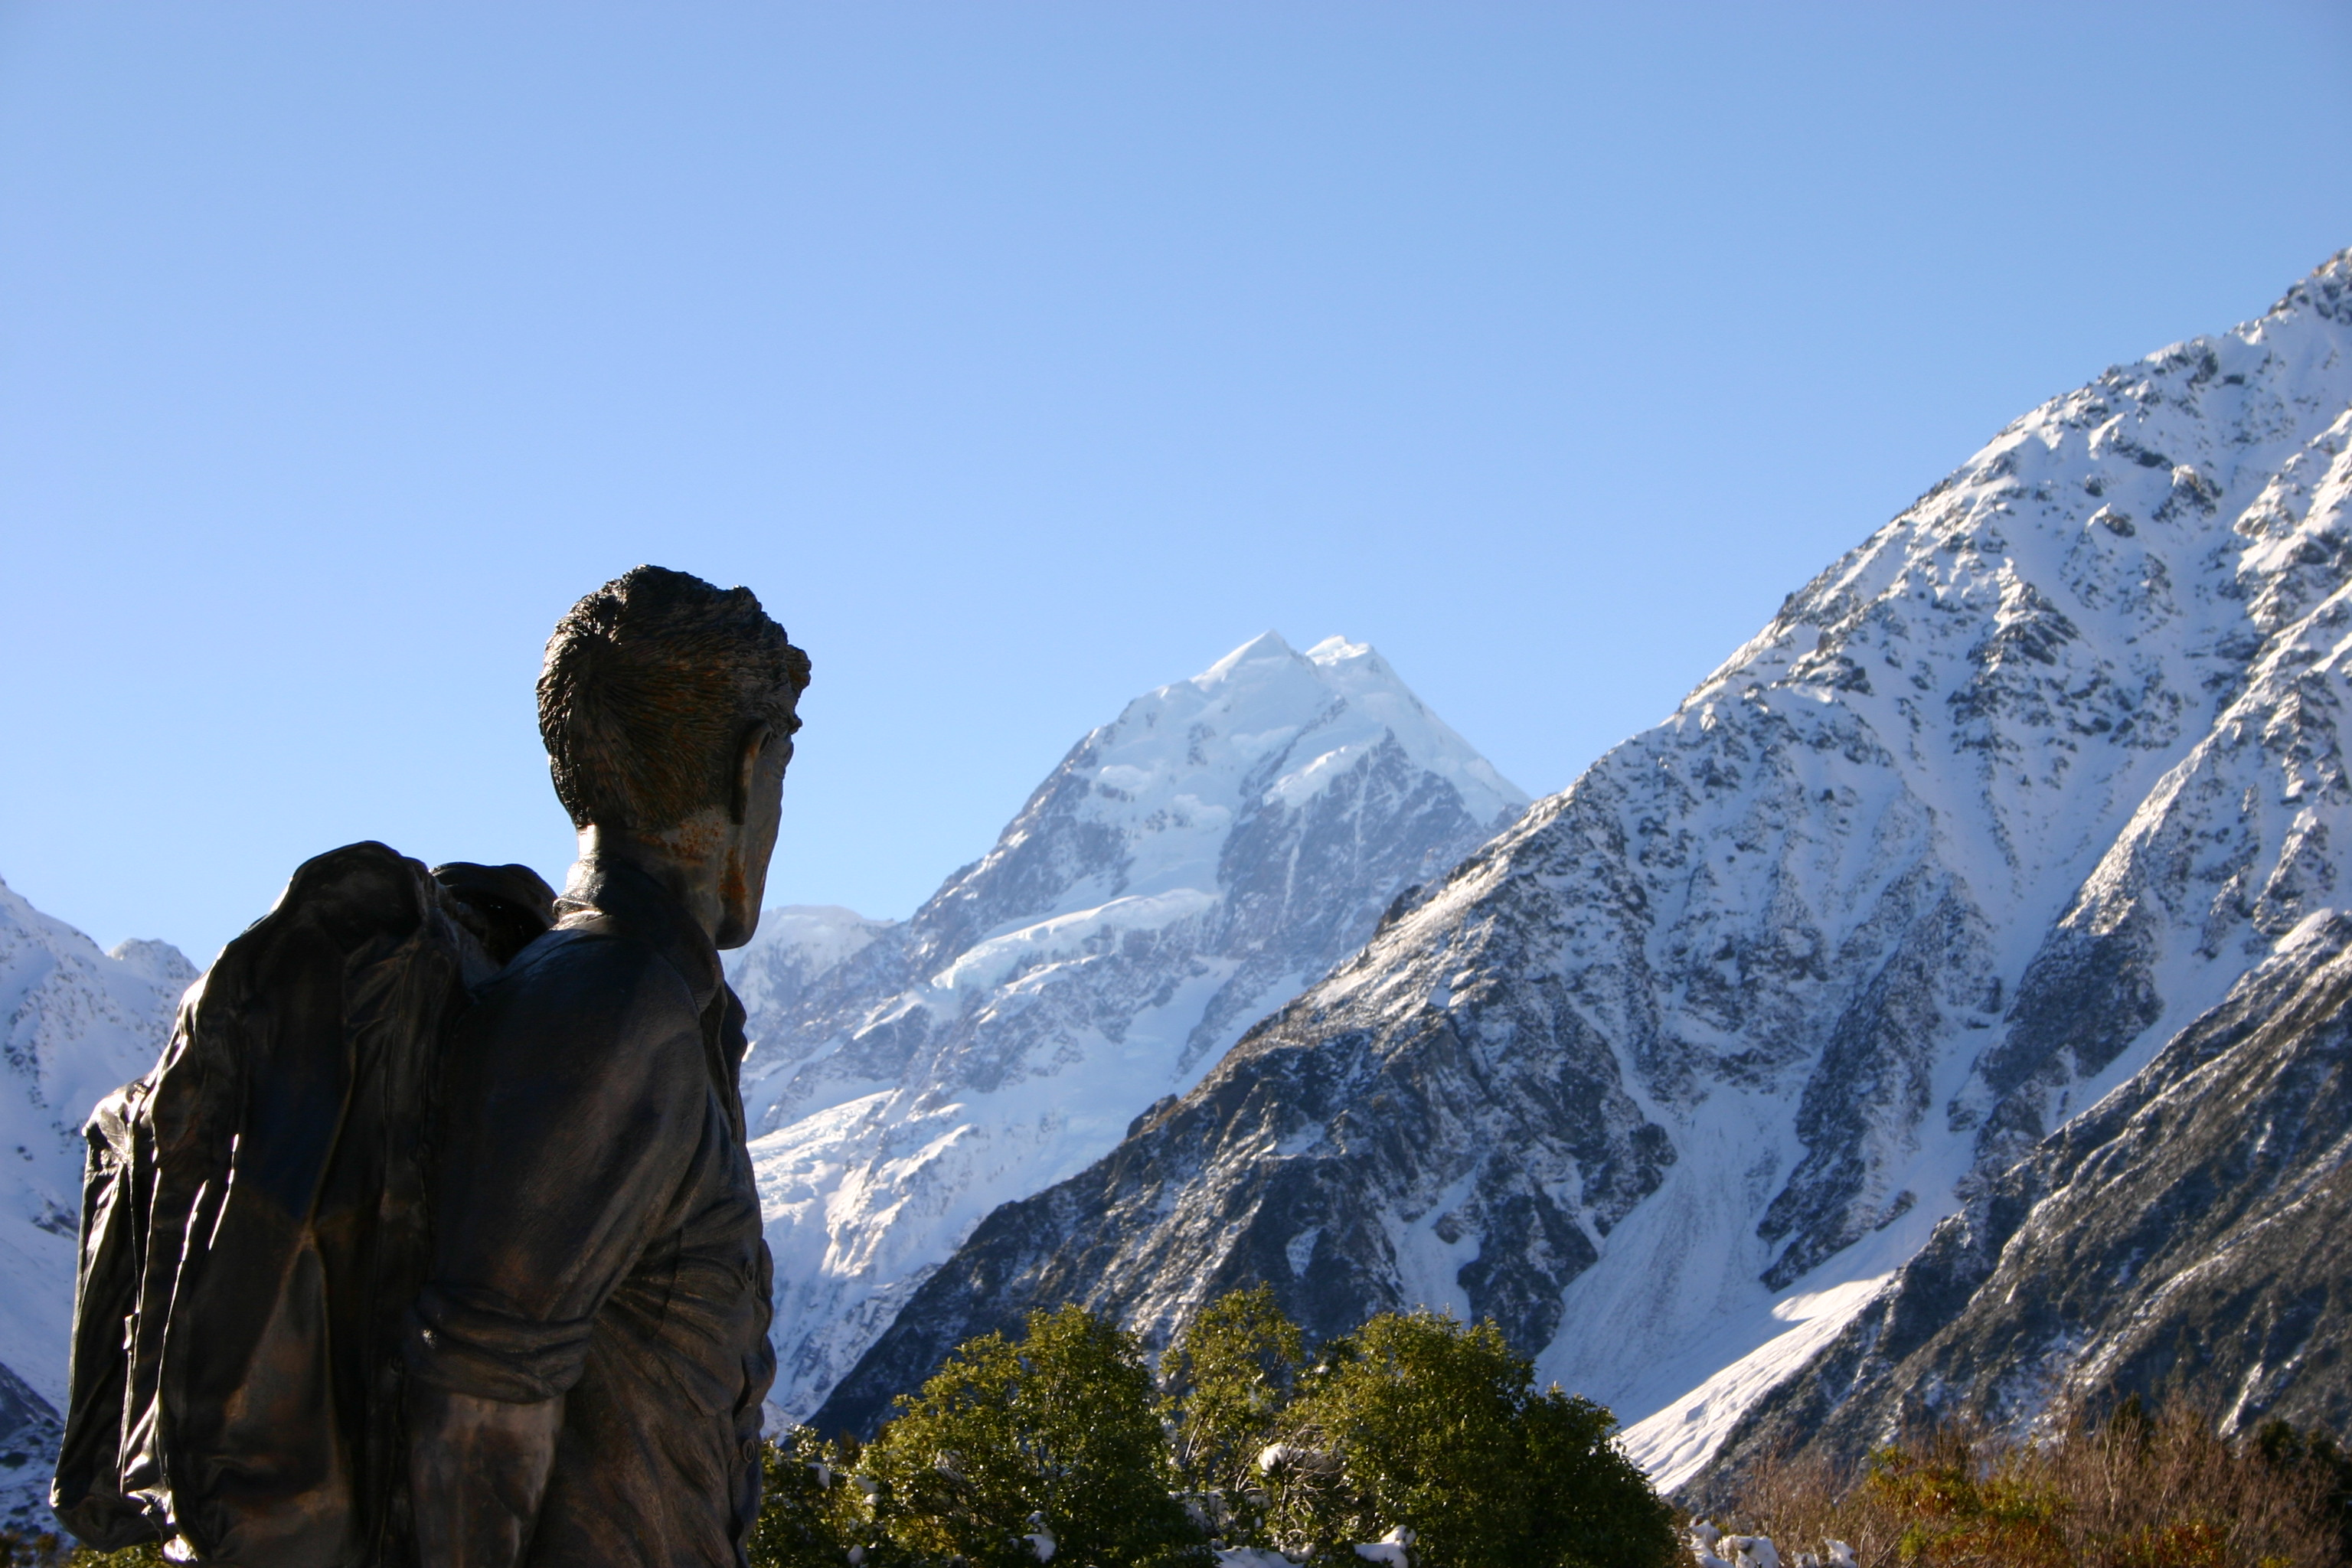 By Jonathan Keelty from Hong Kong, Hong Kong SAR (Watching Mt Cook) [CC BY 2.0 (http://creativecommons.org/licenses/by/2.0)], via Wikimedia Commons